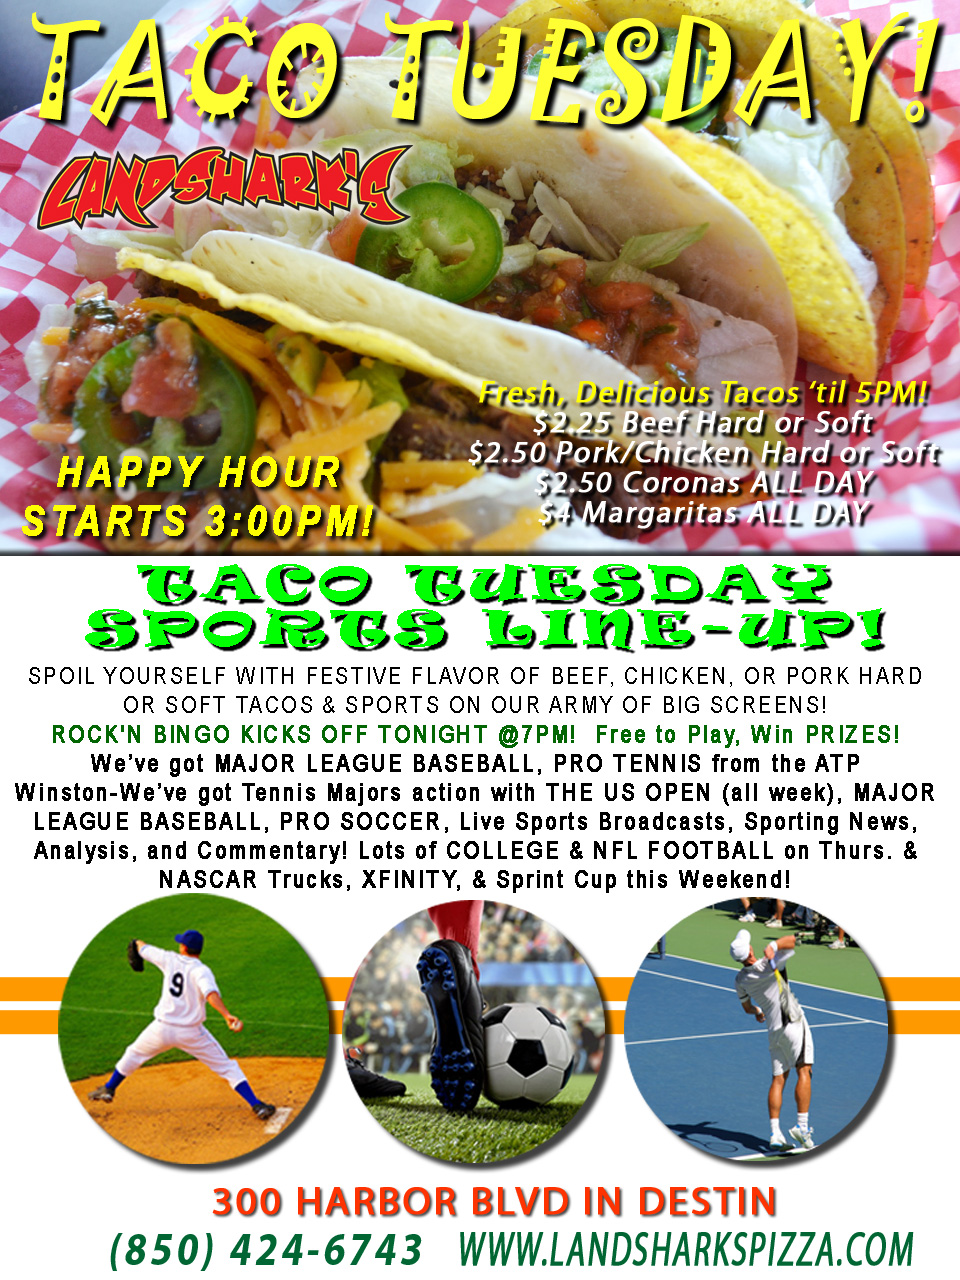 Destin FL Taco Tuesday at Landshark's Pizza 08-30-16a